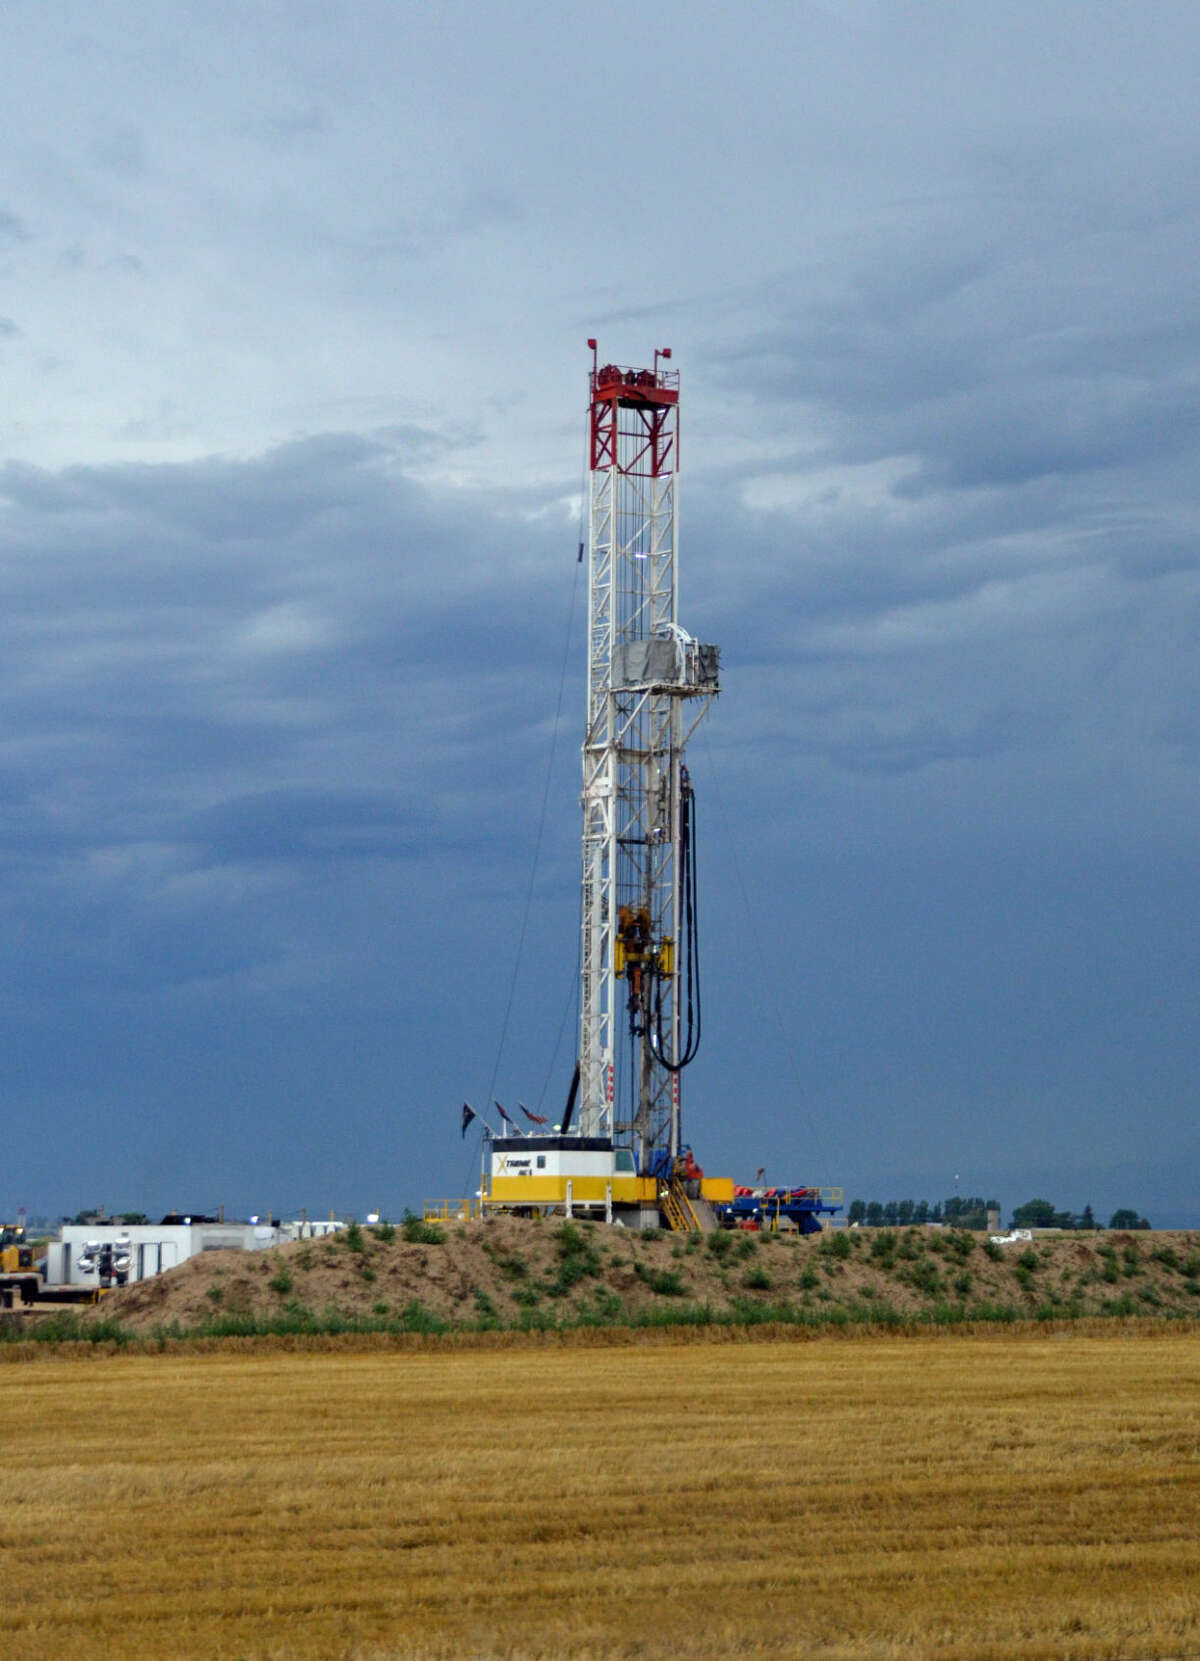 Tall drilling rigs are a common scene in Weld County, Colo., north of Denver, as companies such as Anadarko Petroleum Corp., Encana Corp., and Noble Energy Inc. extract oil from the Niobrara shale formation. (Jennifer A. Dlouhy / The Houston Chronicle)